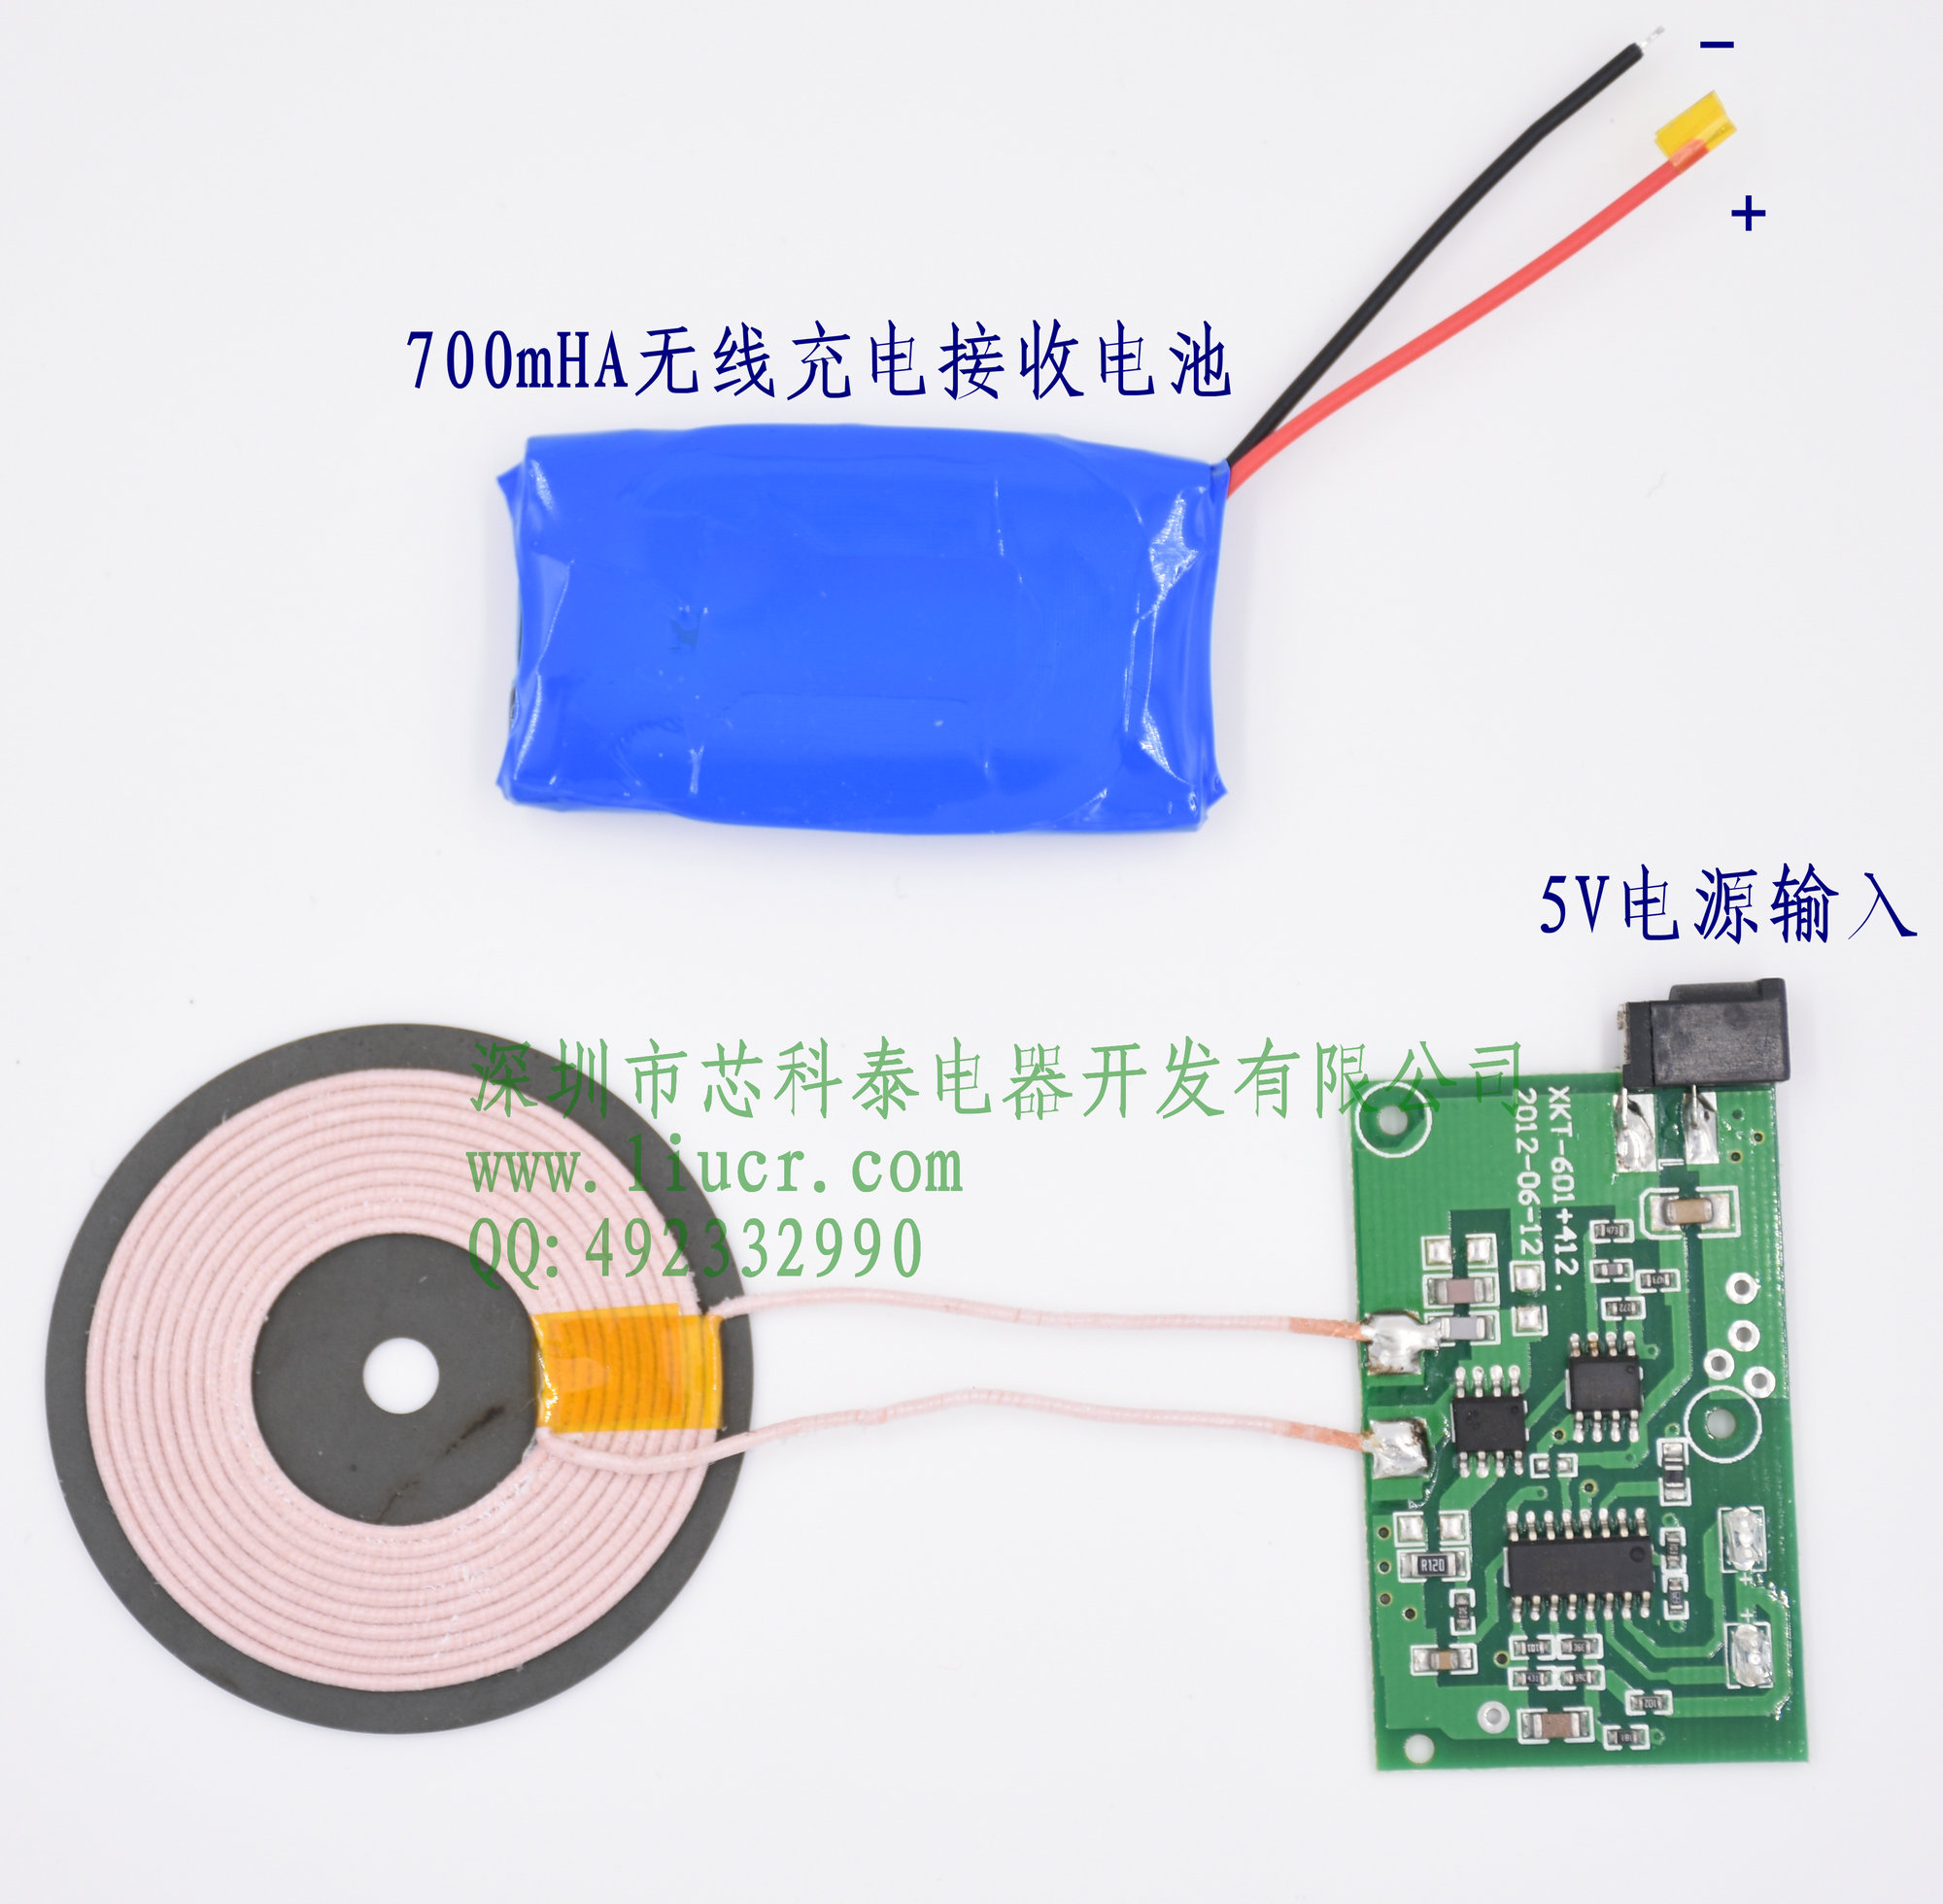 Wireless power supply transmission module set for universal wireless charging battery 12v 250mm dc long distance wireless power supply module wireless transmission charging module module